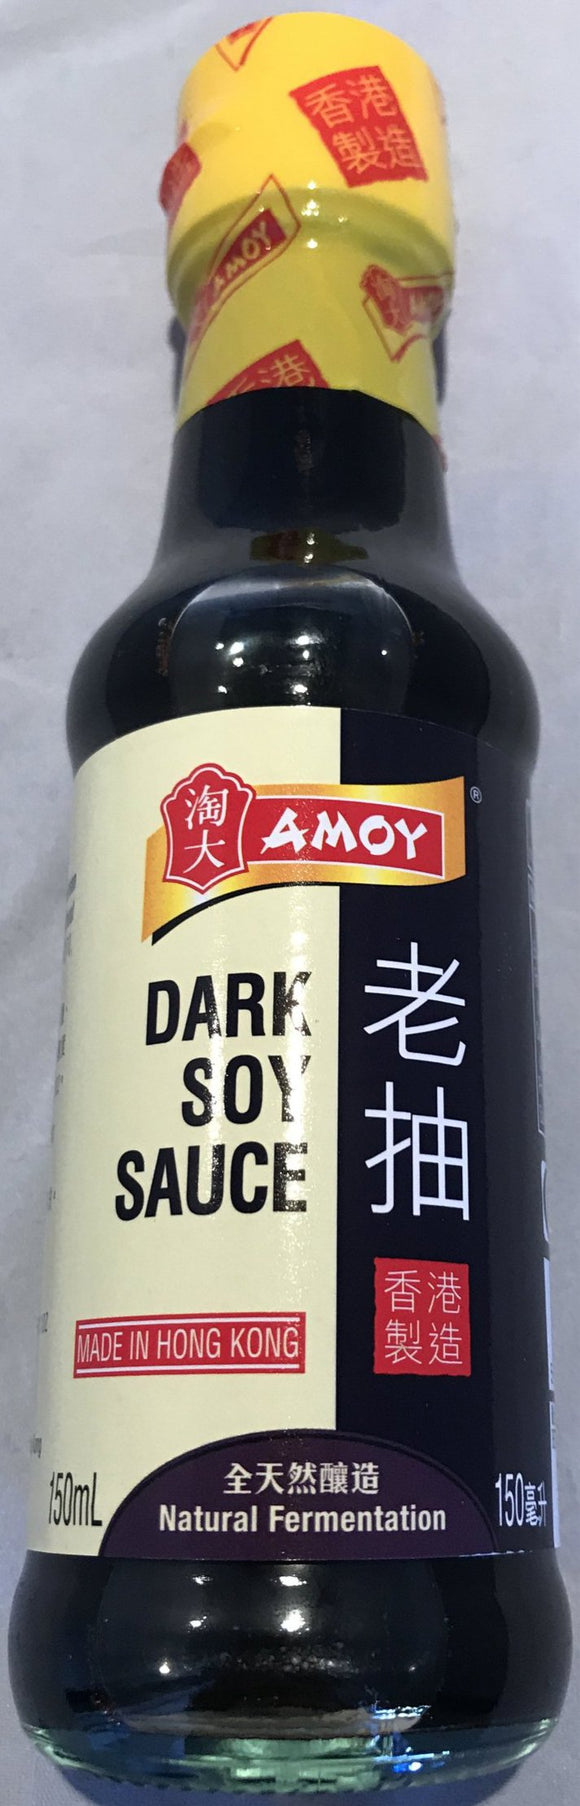 Amoy Dark Soy Sauce 150ml - ExoticEstore